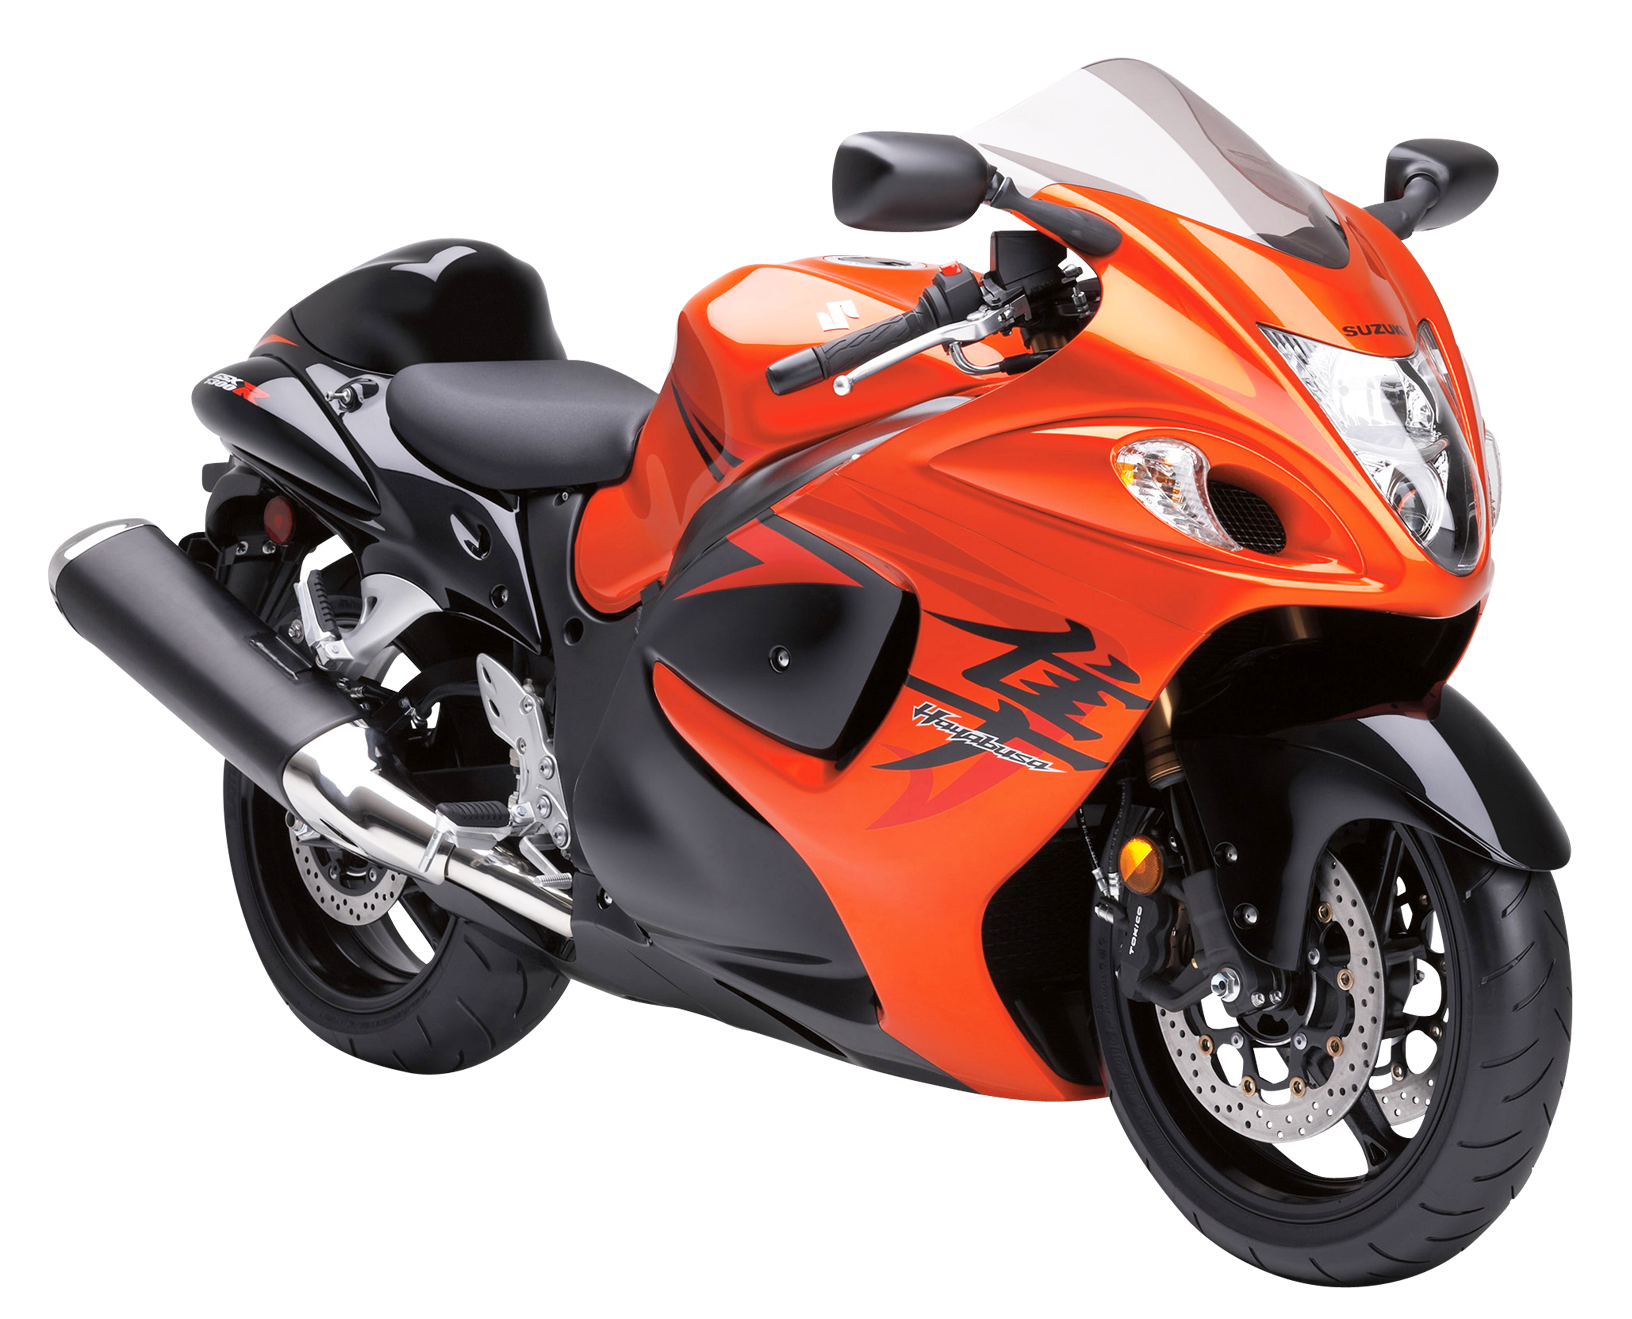 Suzuki Hayabusa Sport Motorcycle Bike PNG Image - PNG HD Bike